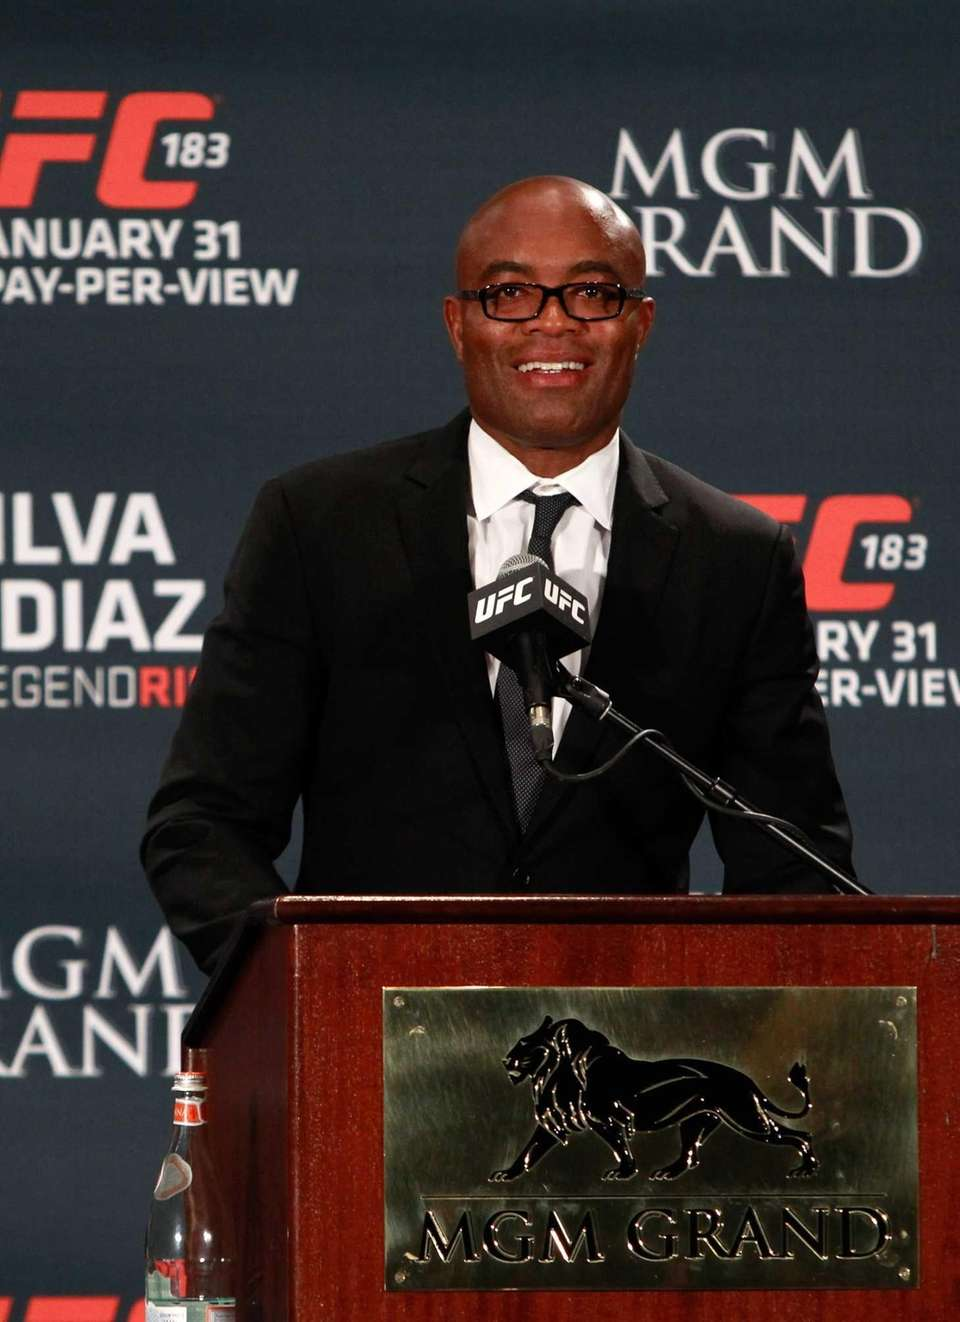 LAS VEGAS, NV - JANUARY 31: Anderson Silva